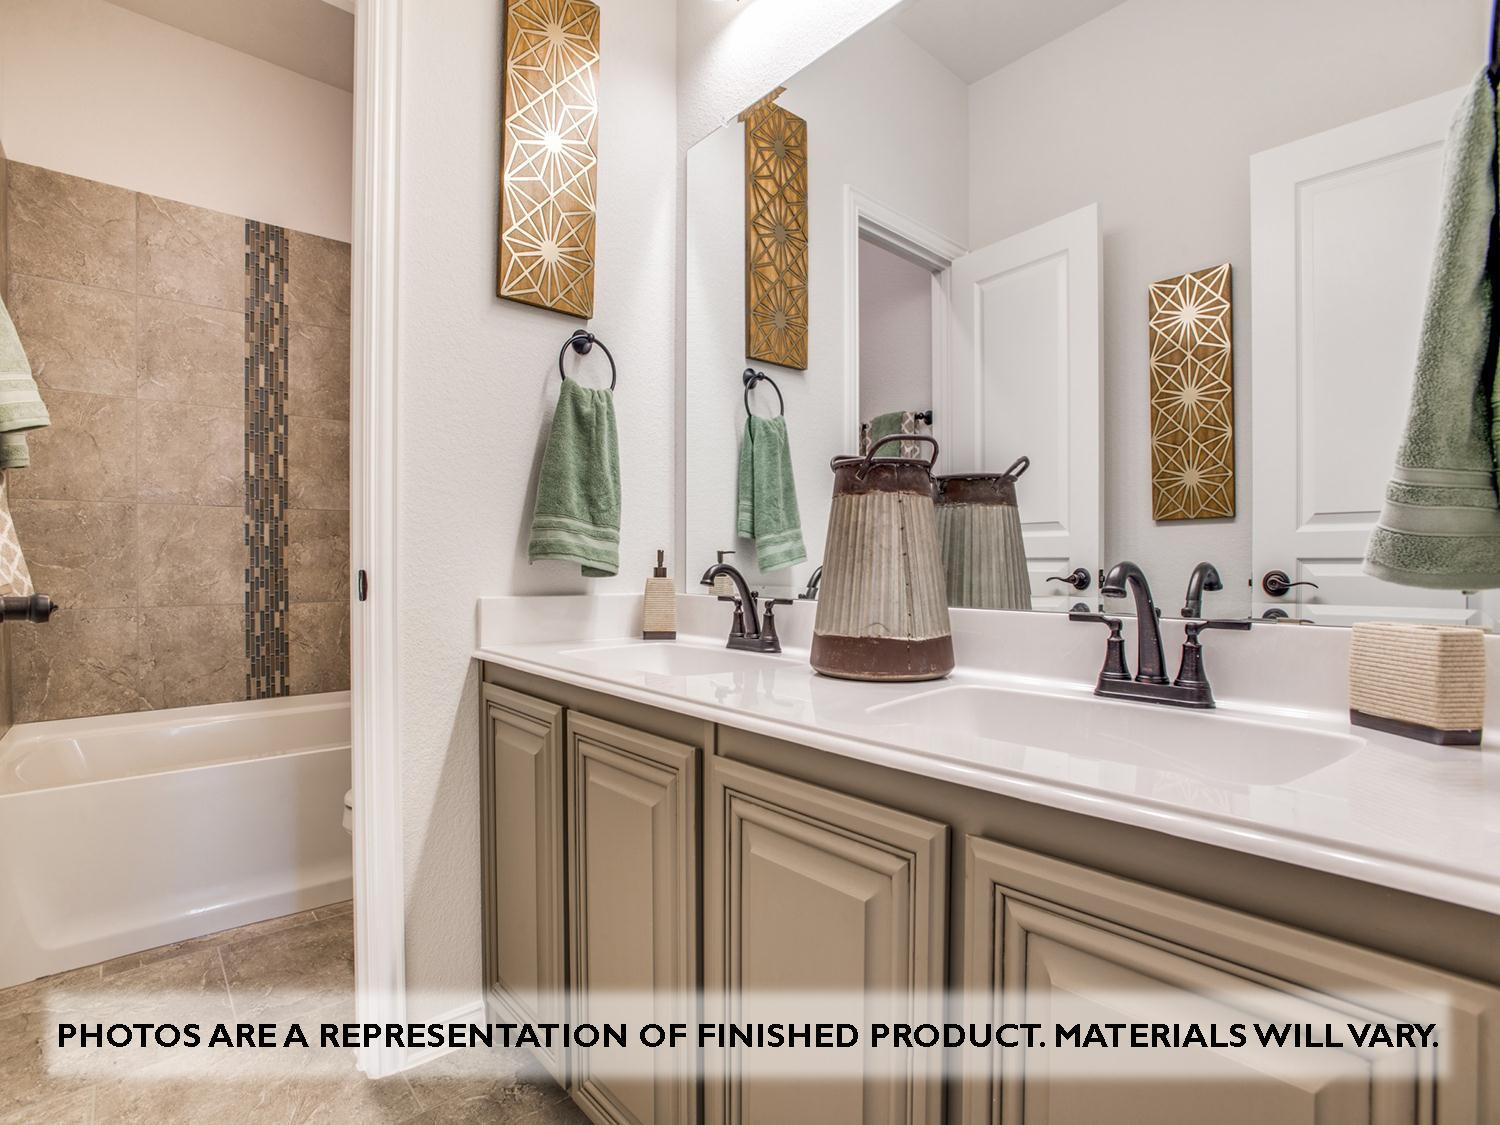 Bathroom featured in the Magnolia II Side Entry By Bloomfield Homes in Dallas, TX